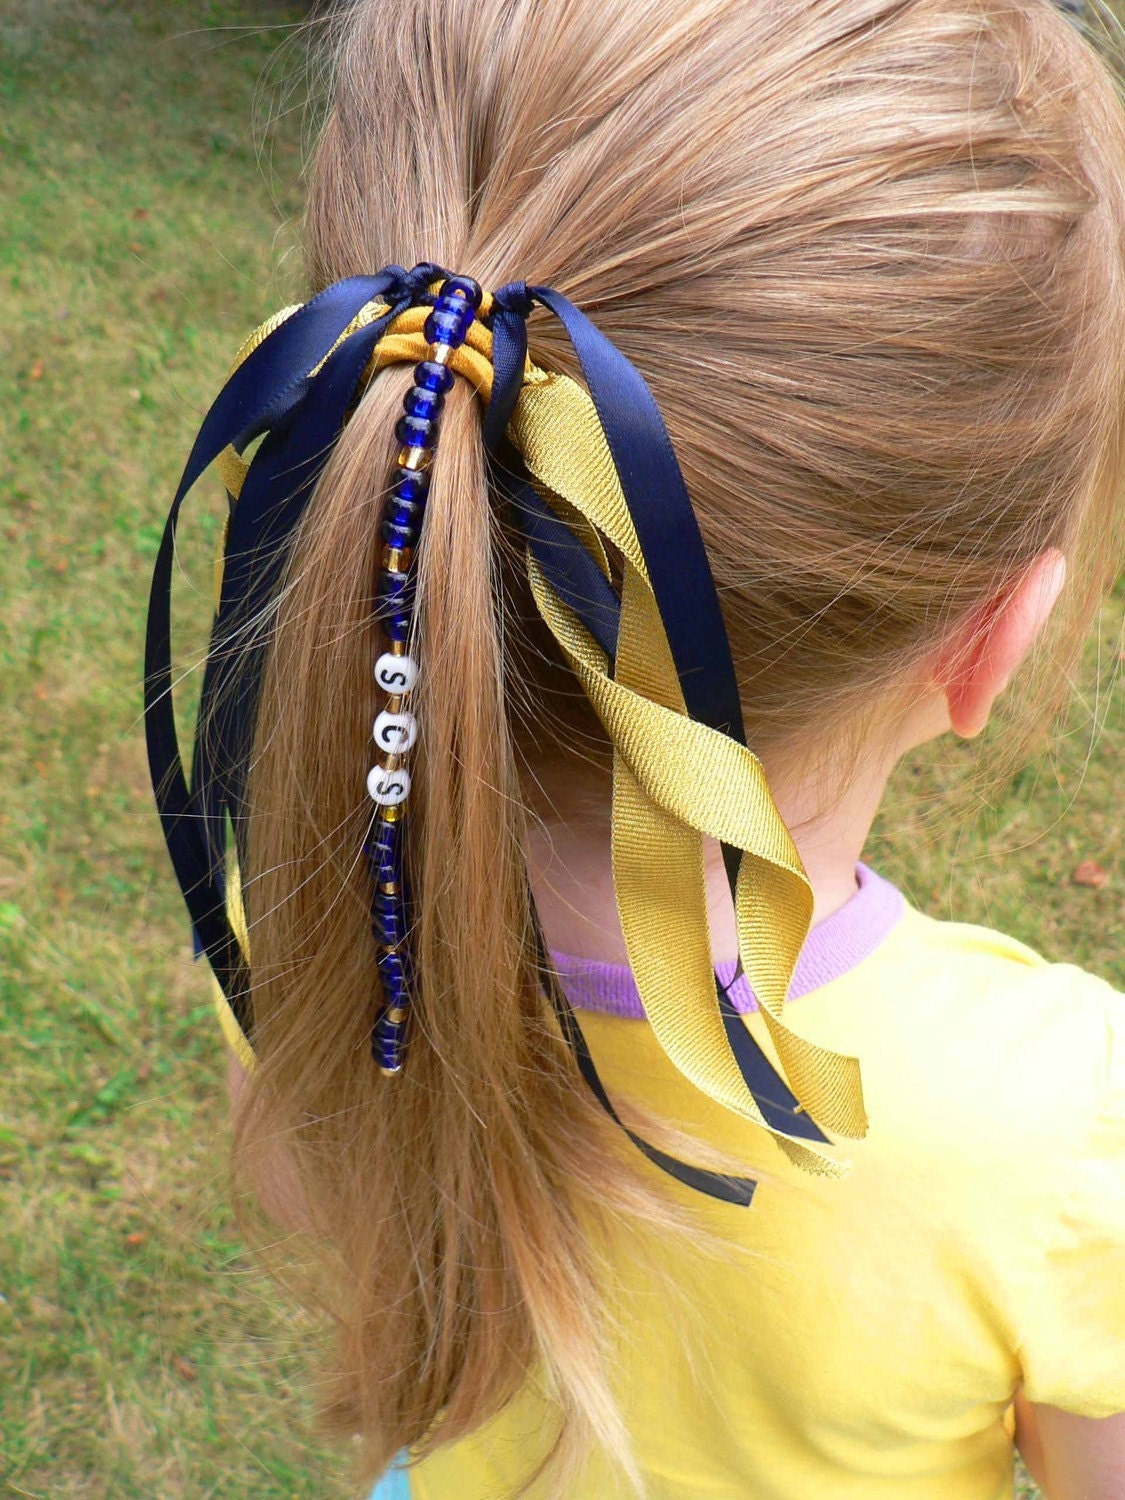 ... Hair, Hair Ties, Hair Bows, Cheer Bows, Ribbon Hair, Cheer Leading